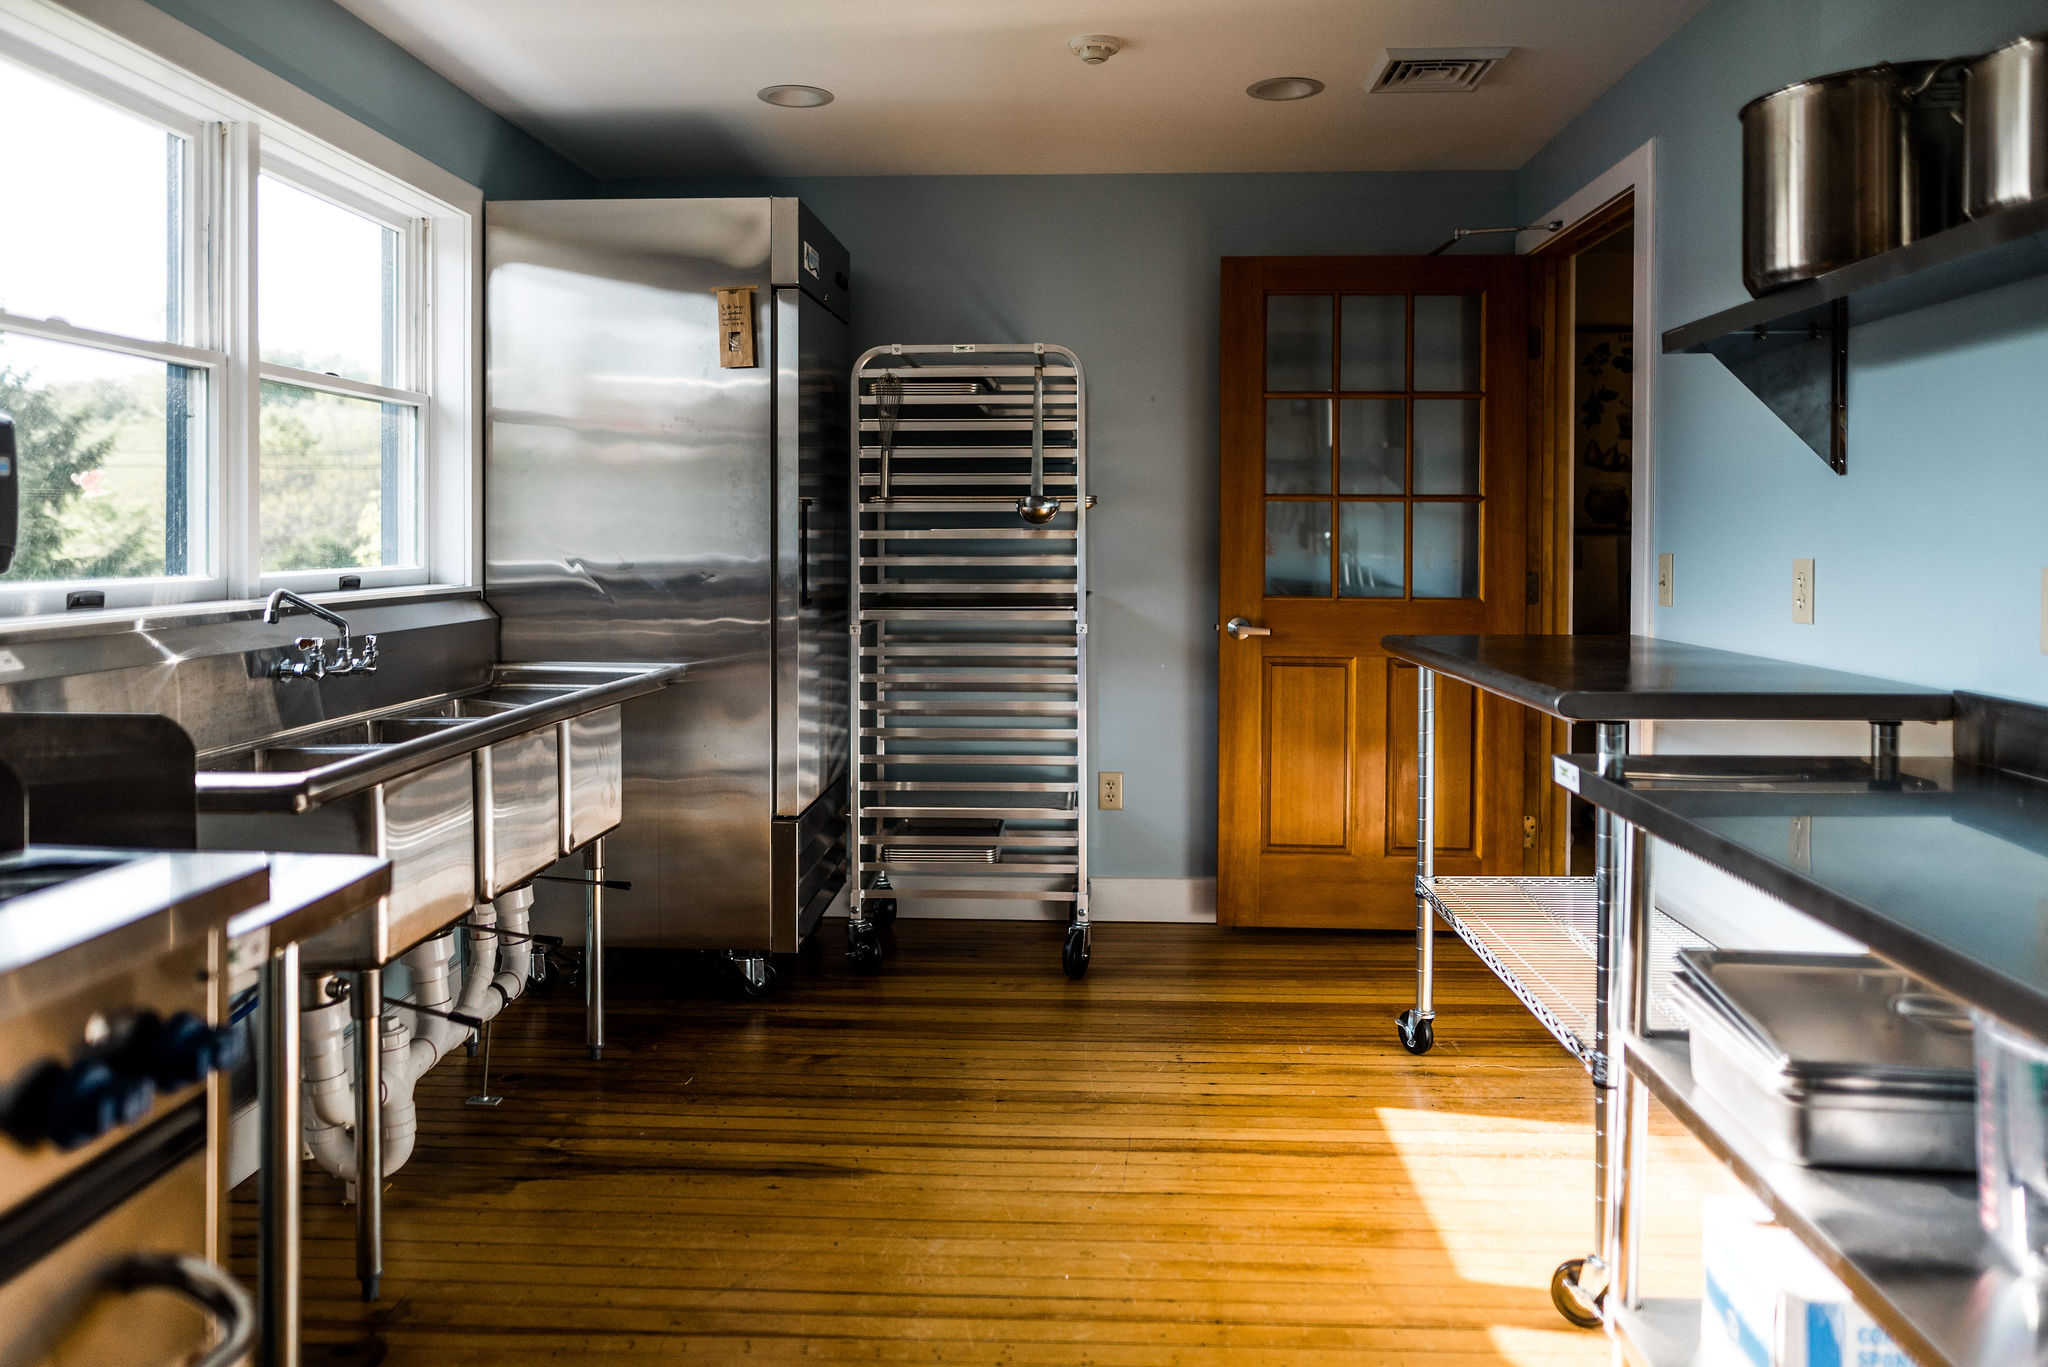 a community kitchen available for producers to process the bounty of the season